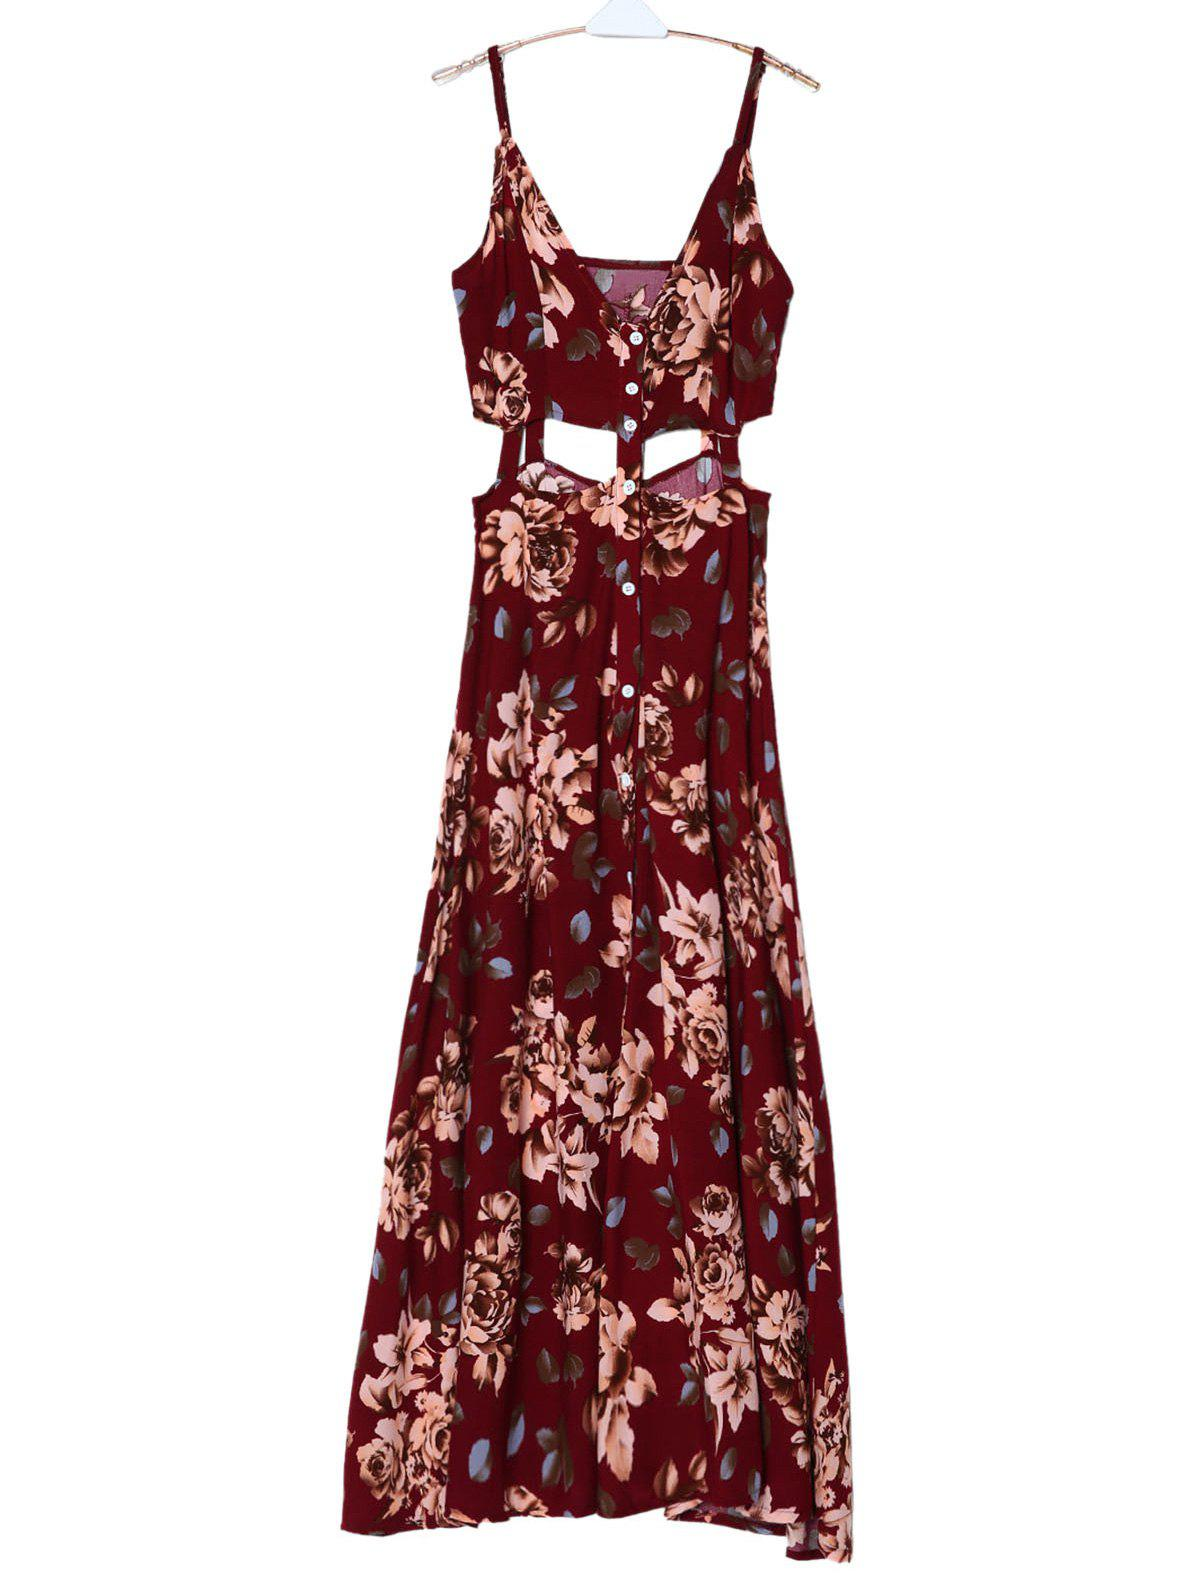 Bohemian Spaghetti Strap Sleeveless Floral Print Hollow Out High Slit Women's Dress - DEEP RED M